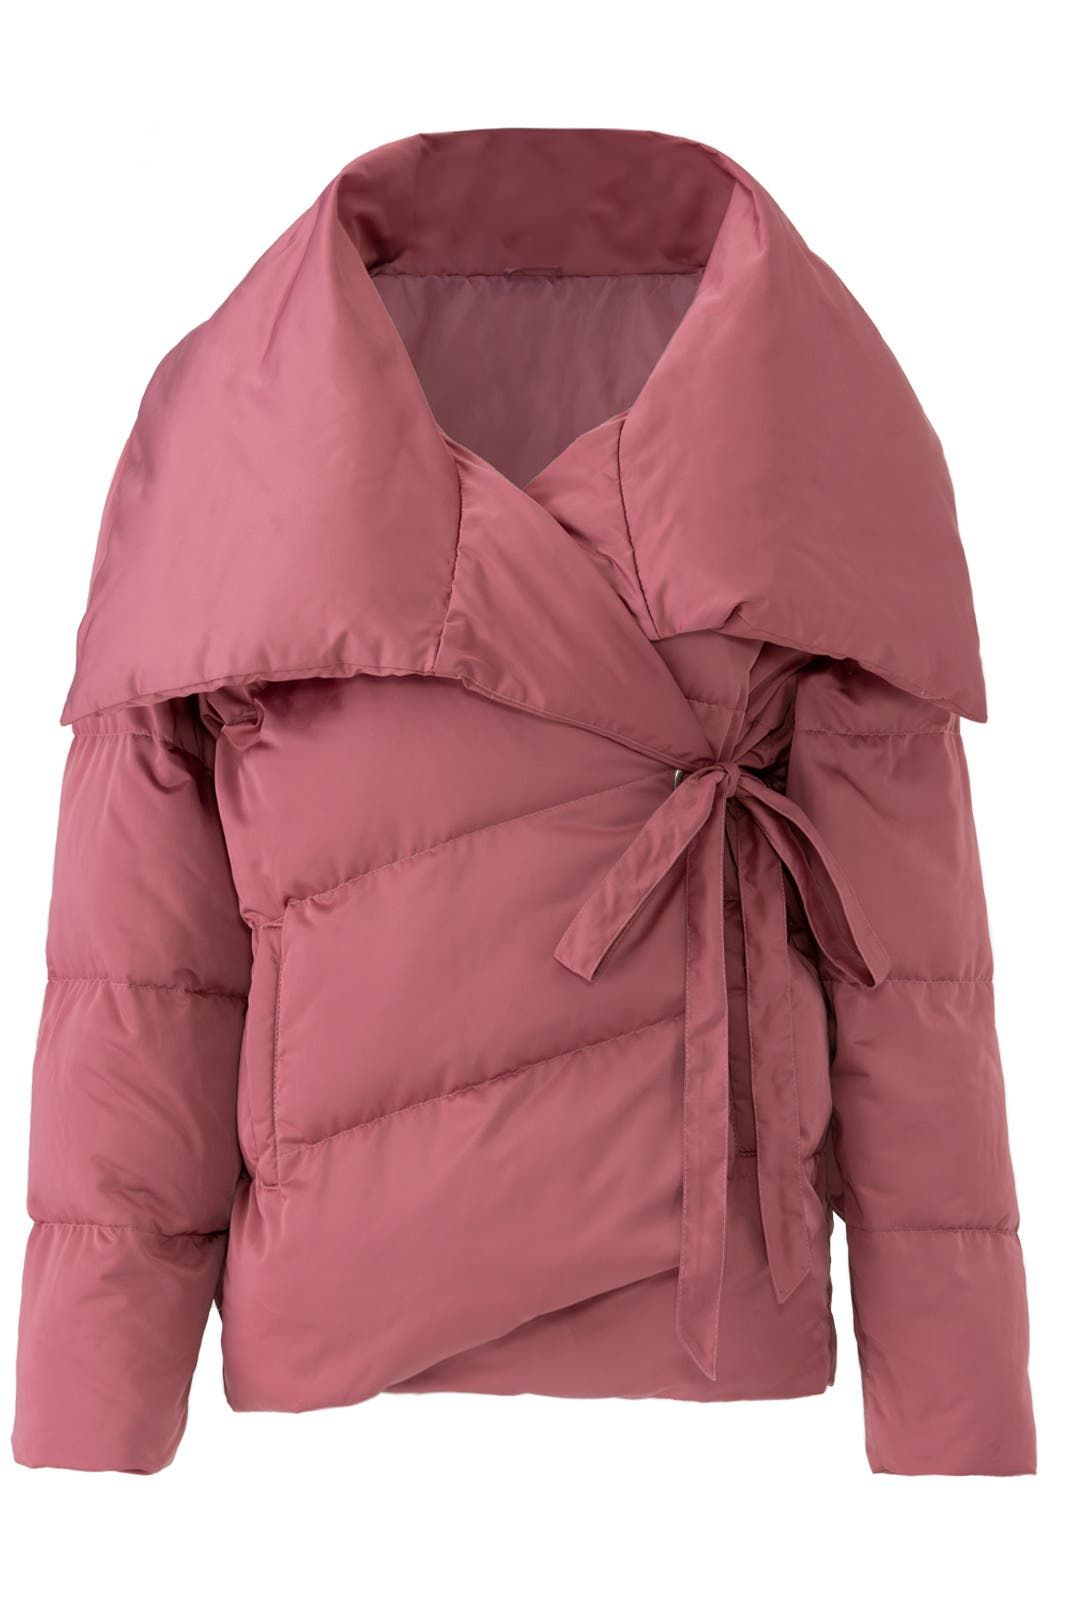 737cf832f44 Pink Wrap Puffer Jacket by Avec Les Filles for  30